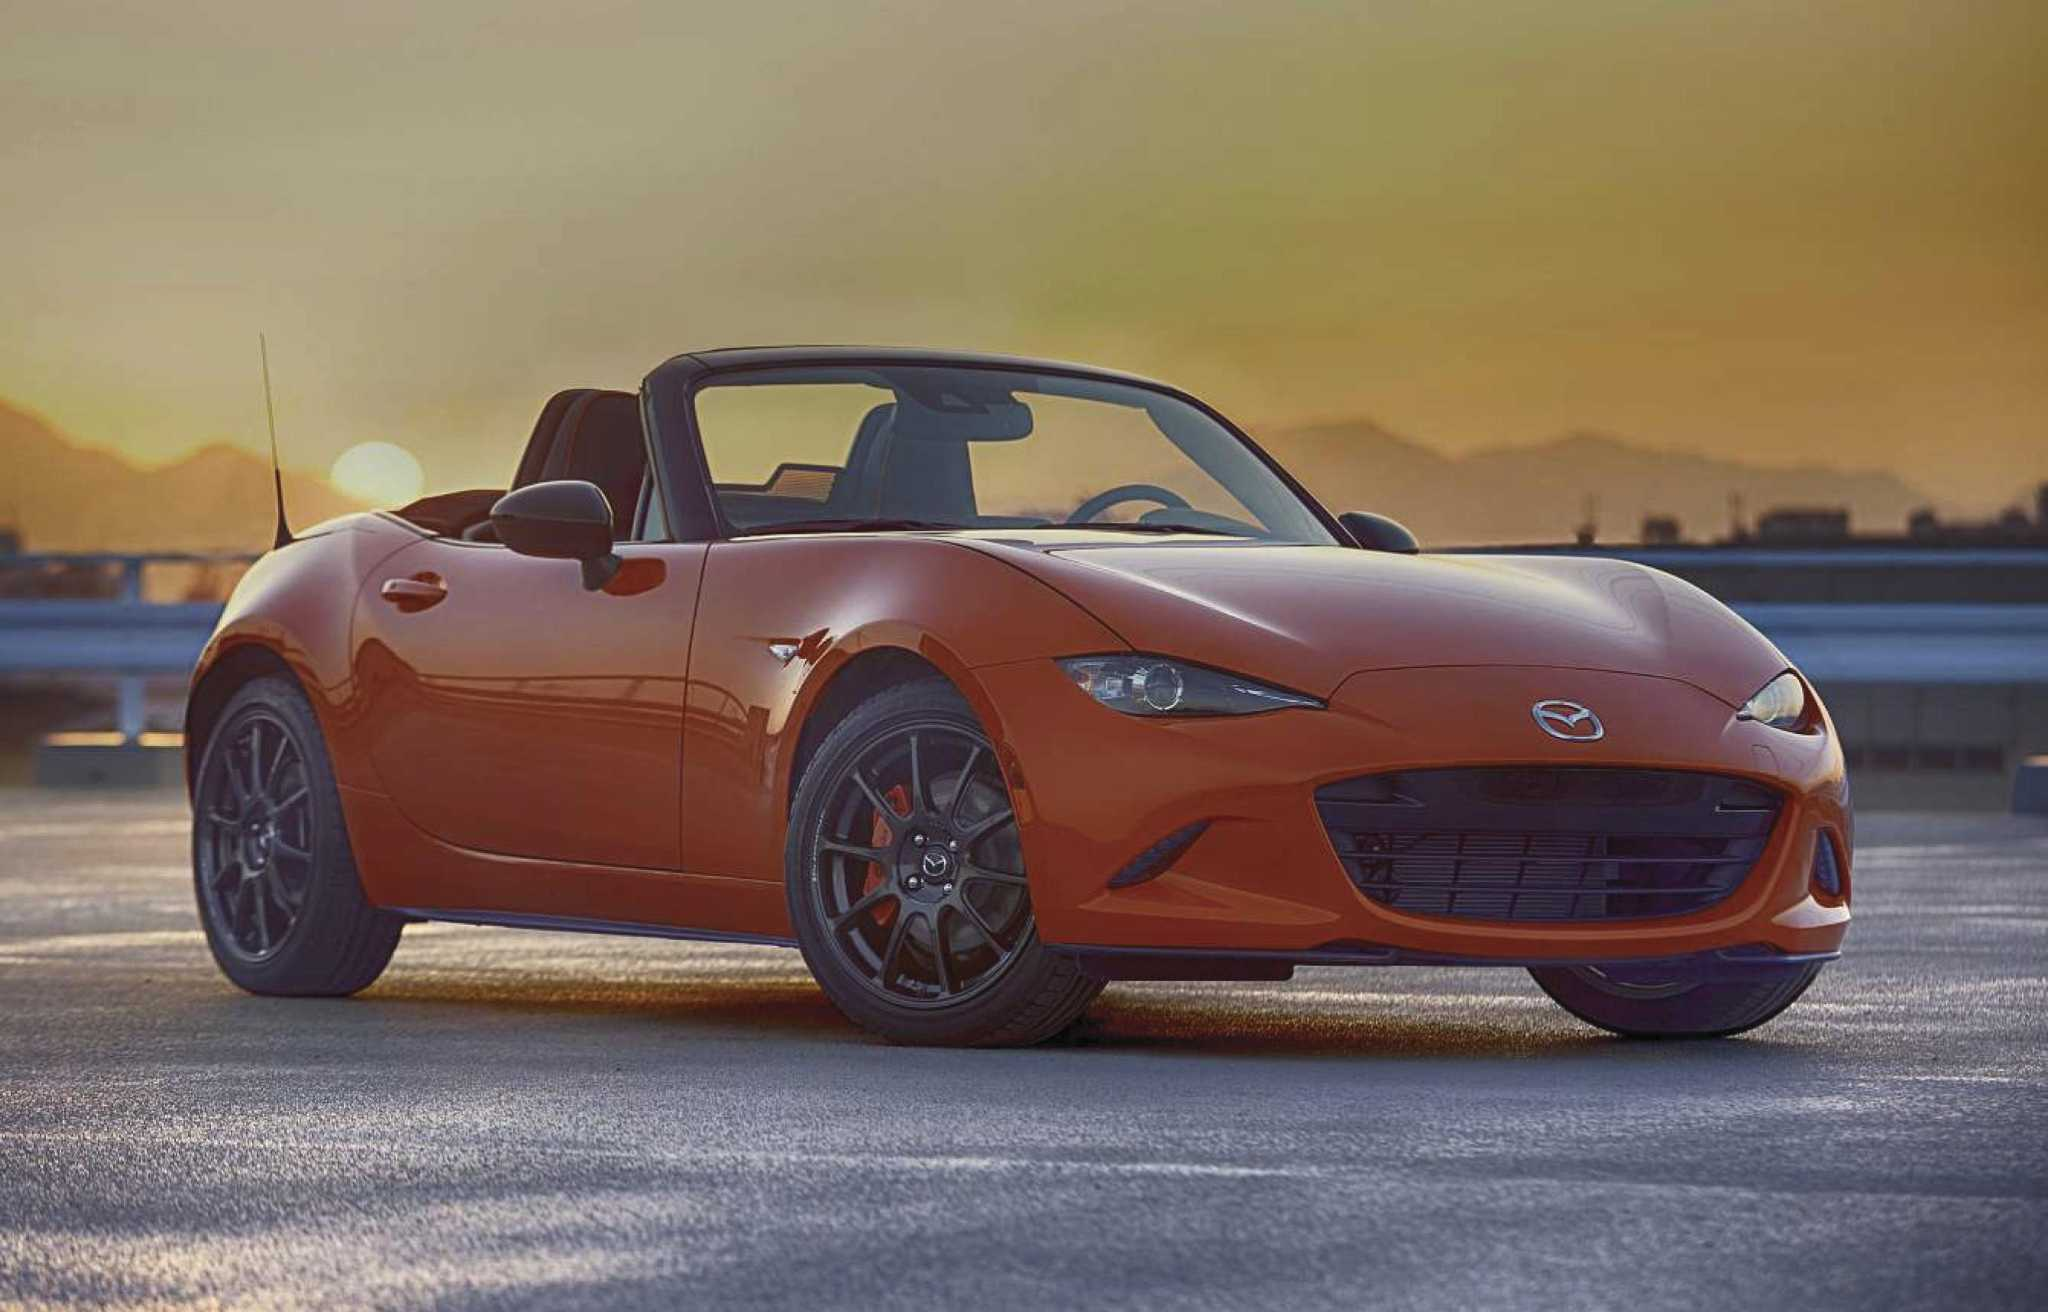 Chicago's Miata magic: 30th anniversary MX-5's sellout at auto show a tough act to follow